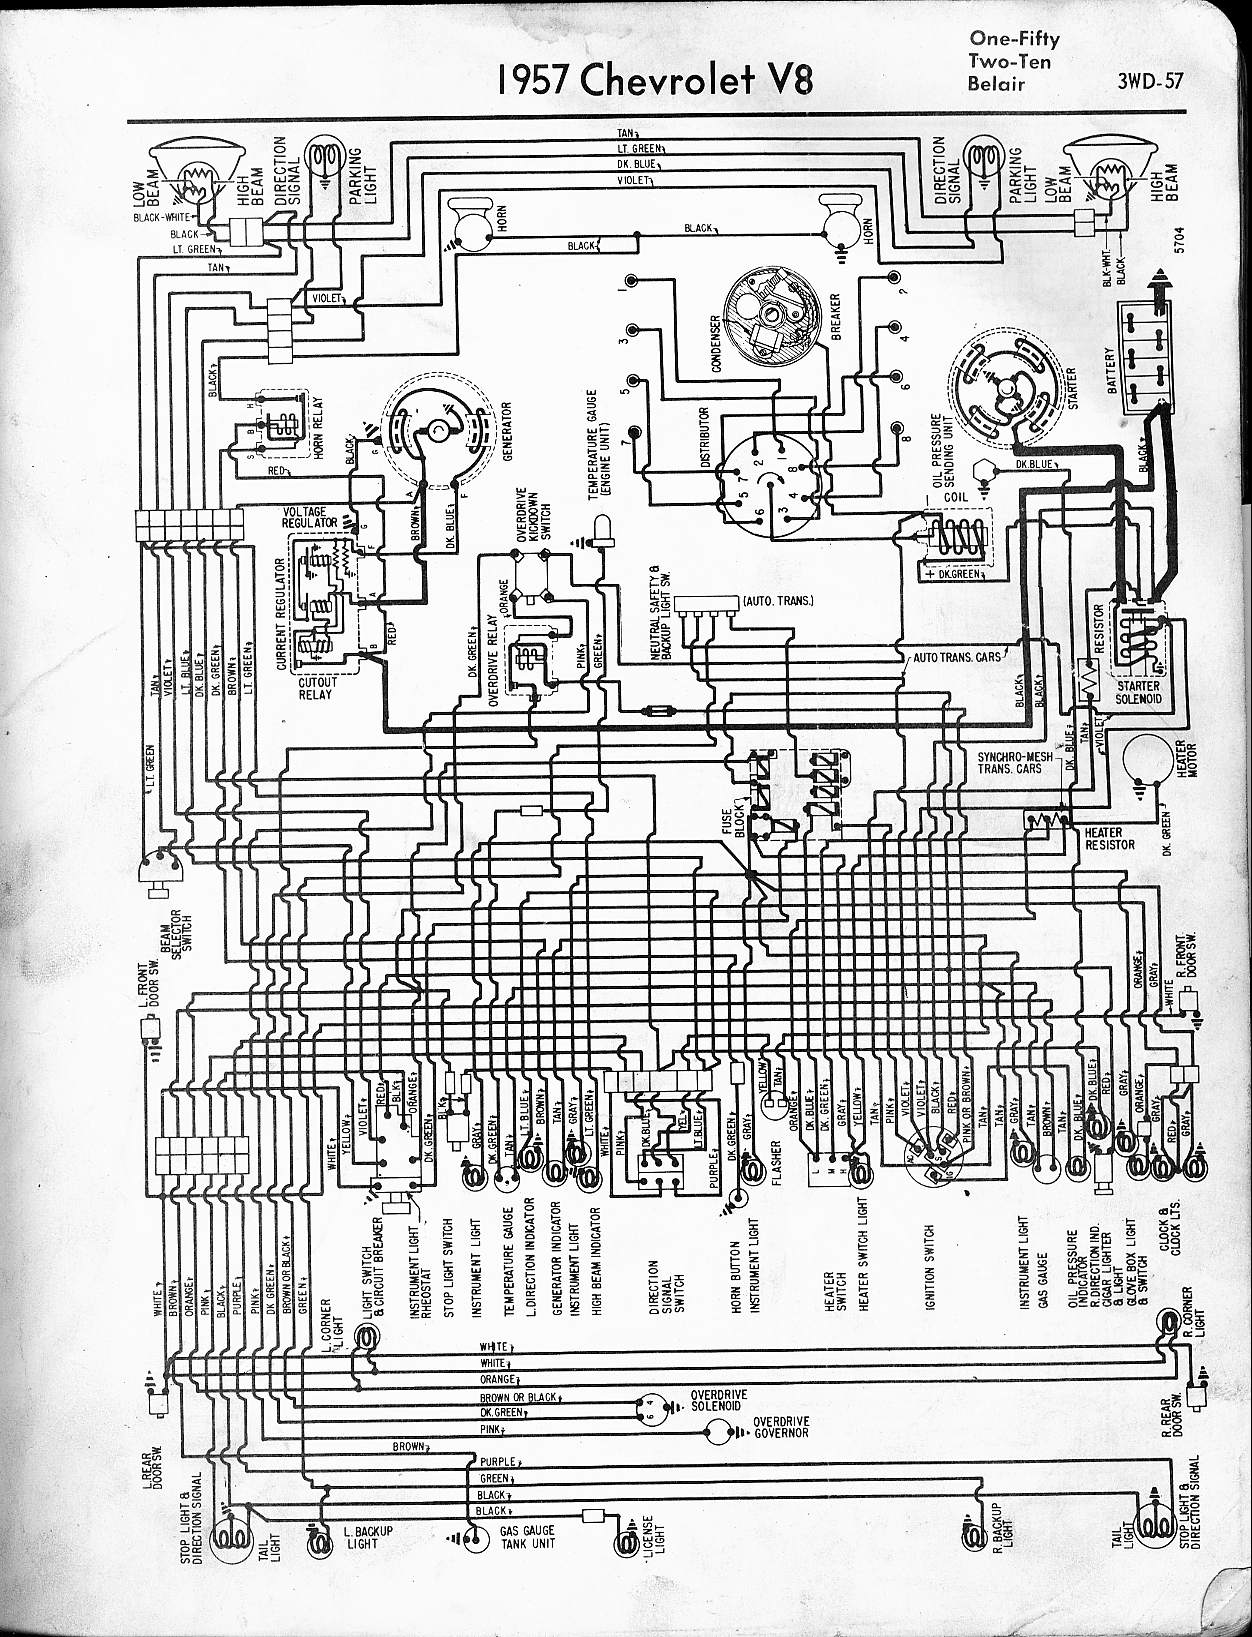 MWireChev57_3WD 057 57 65 chevy wiring diagrams old car manual project wiring diagrams at soozxer.org